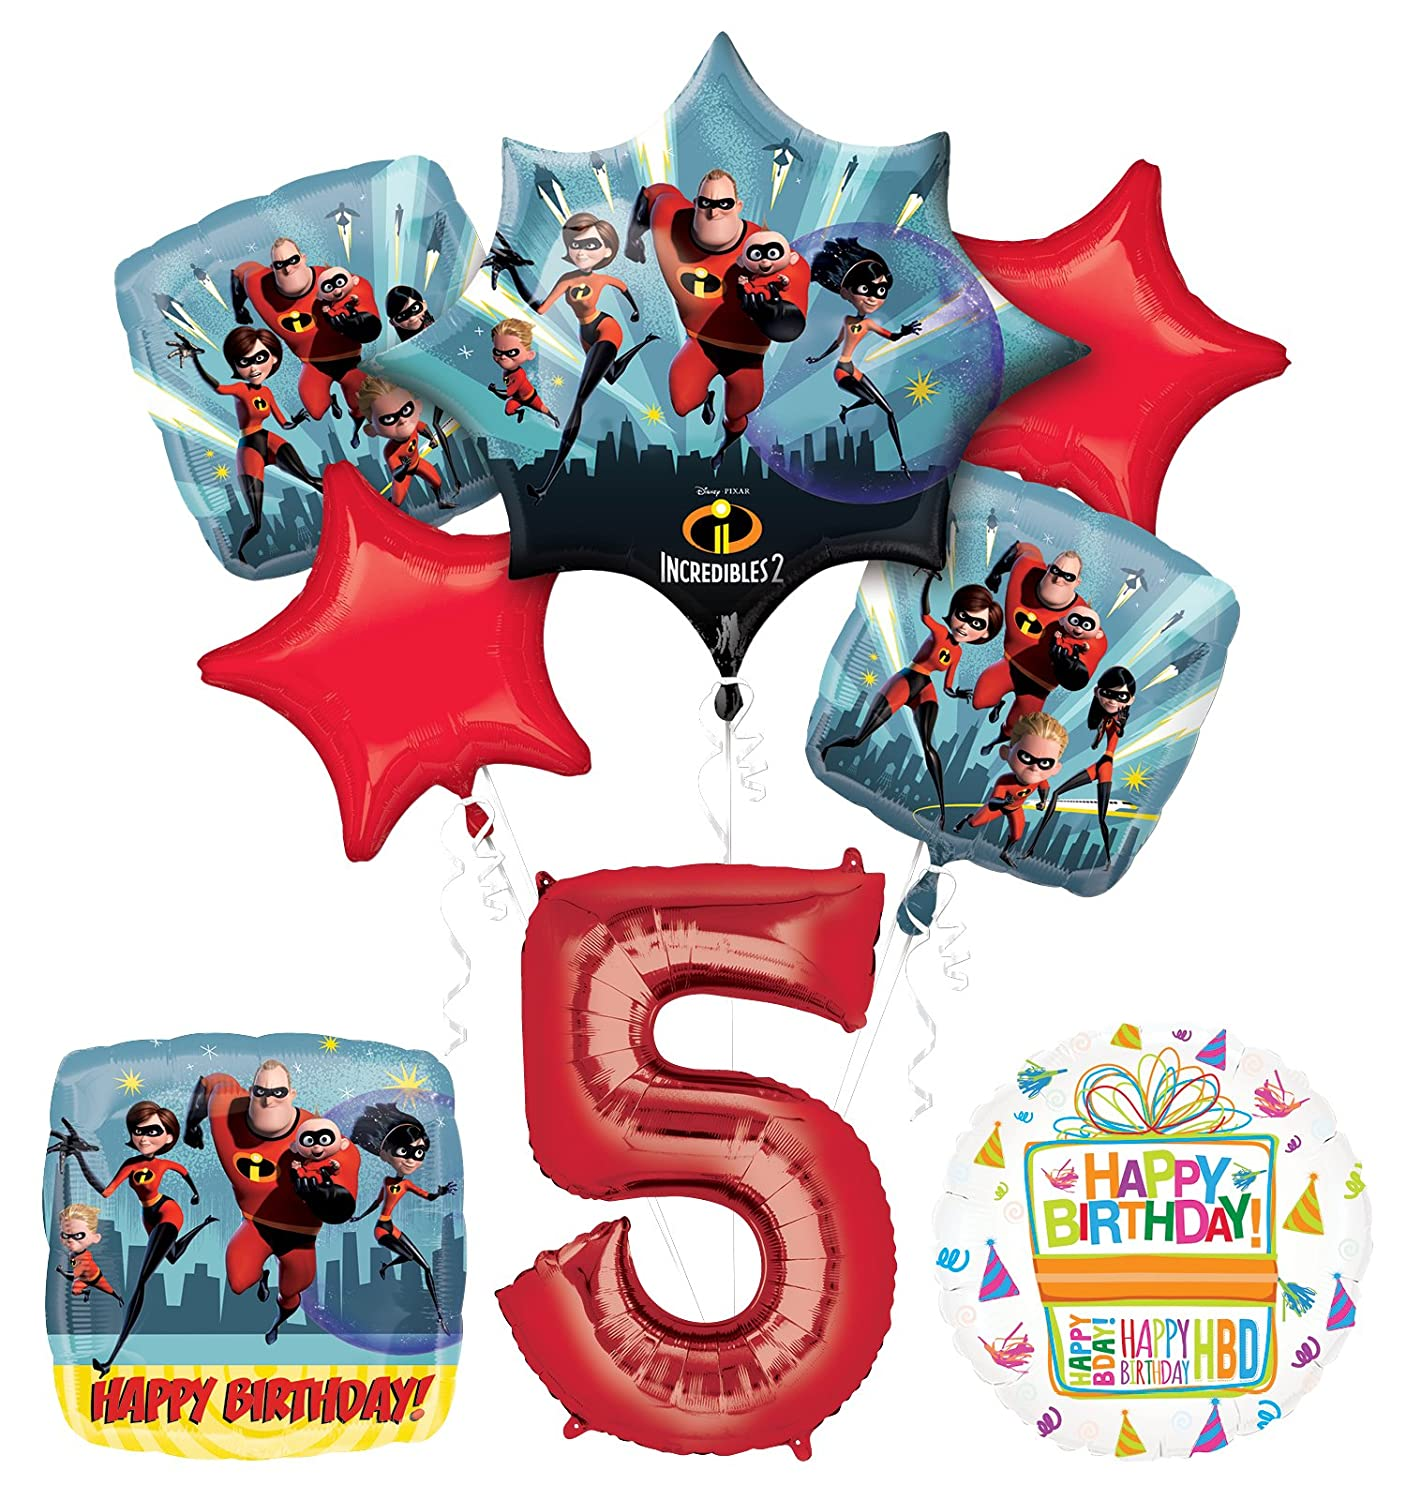 Amazon Incredibles 2 Party Supplies 5th Birthday Balloon Bouquet Decorations Toys Games